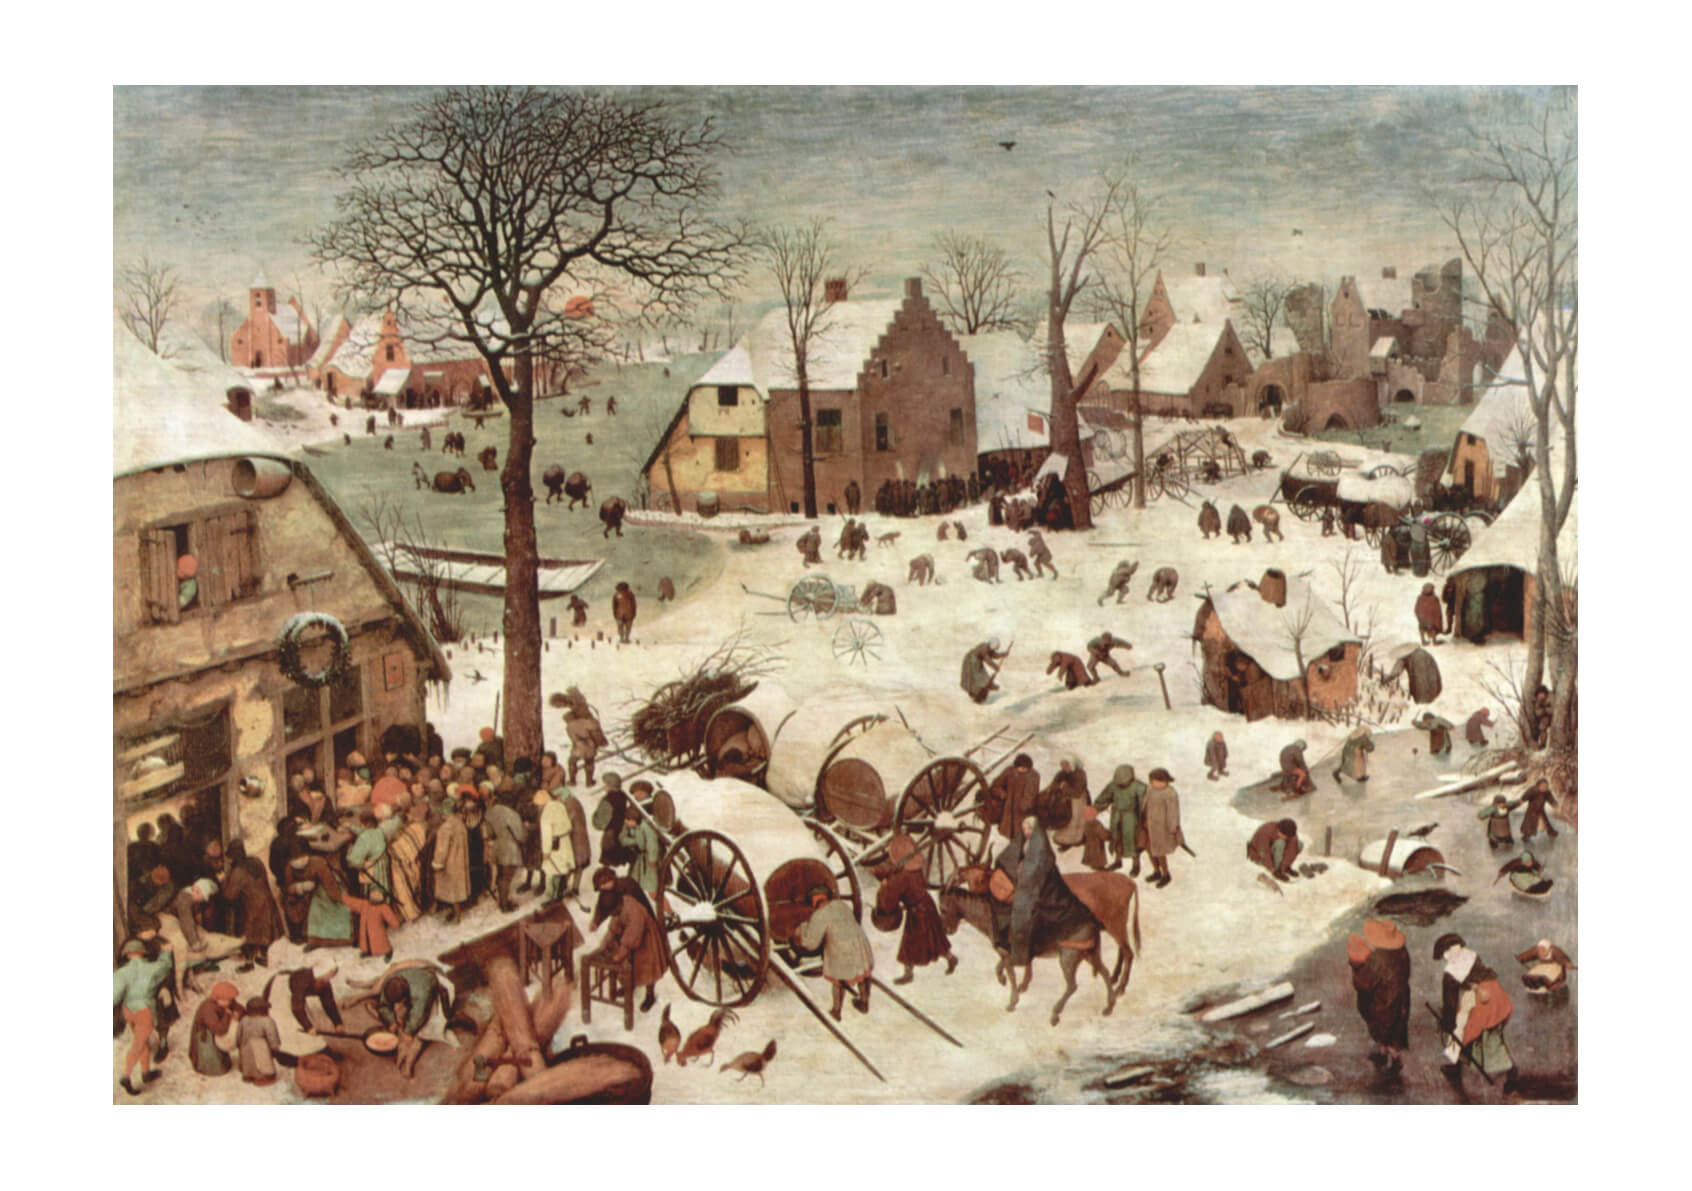 Pieter Bruegel the Elder - Village